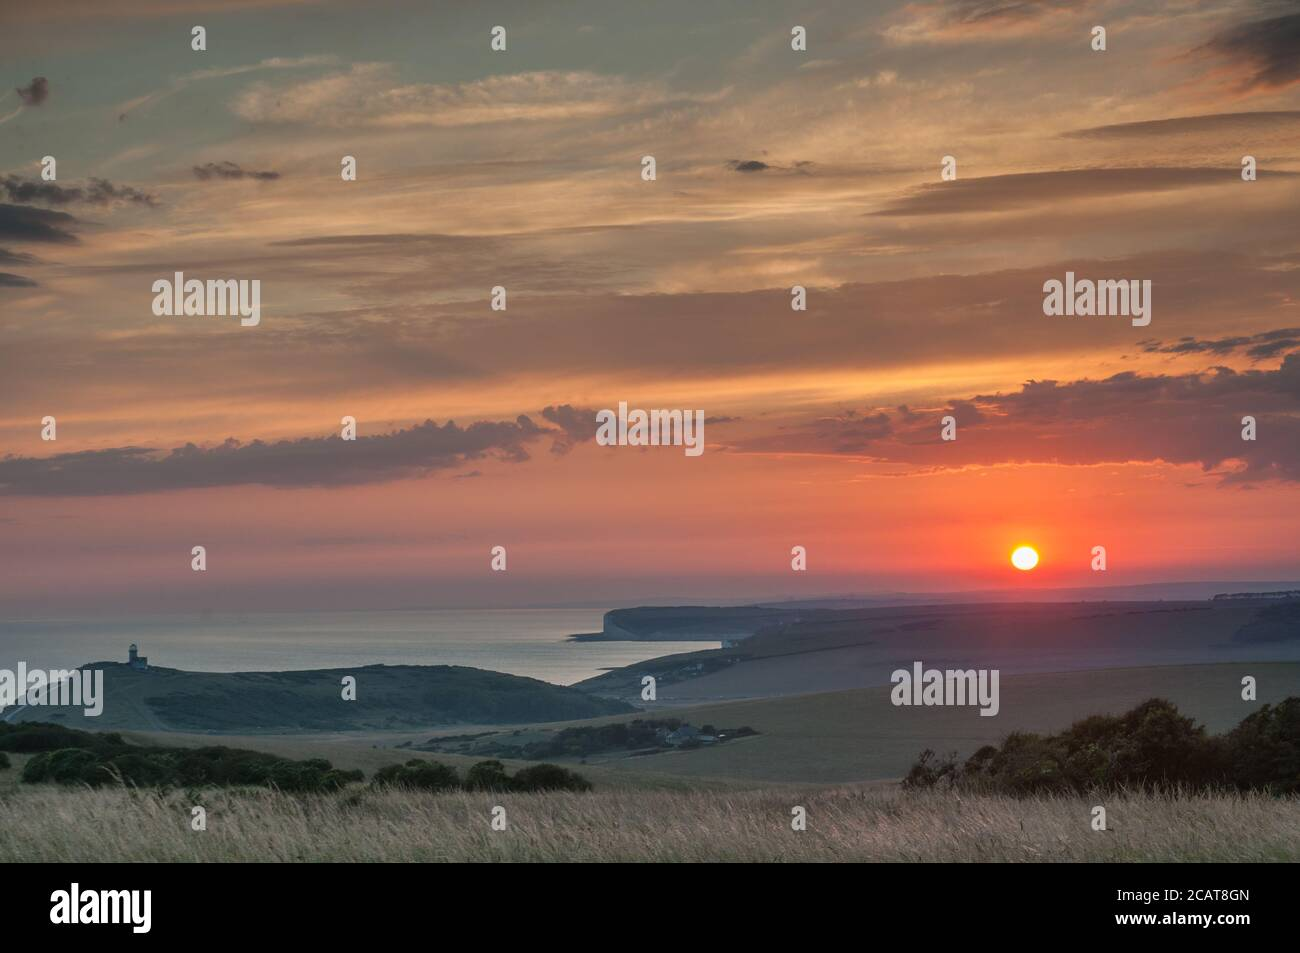 Eastbourne, East Sussex, UK. 8th Aug, 2020. Amazing colours & interesting clouds at sunset. A glorious end to a scorching day on the South coast. The Belle Tout lighthouse left of centre, overlooking Birling Gap toward Seaford & Newhaven. Taken from Beachy Head area. Credit: David Burr/Alamy Live News Stock Photo